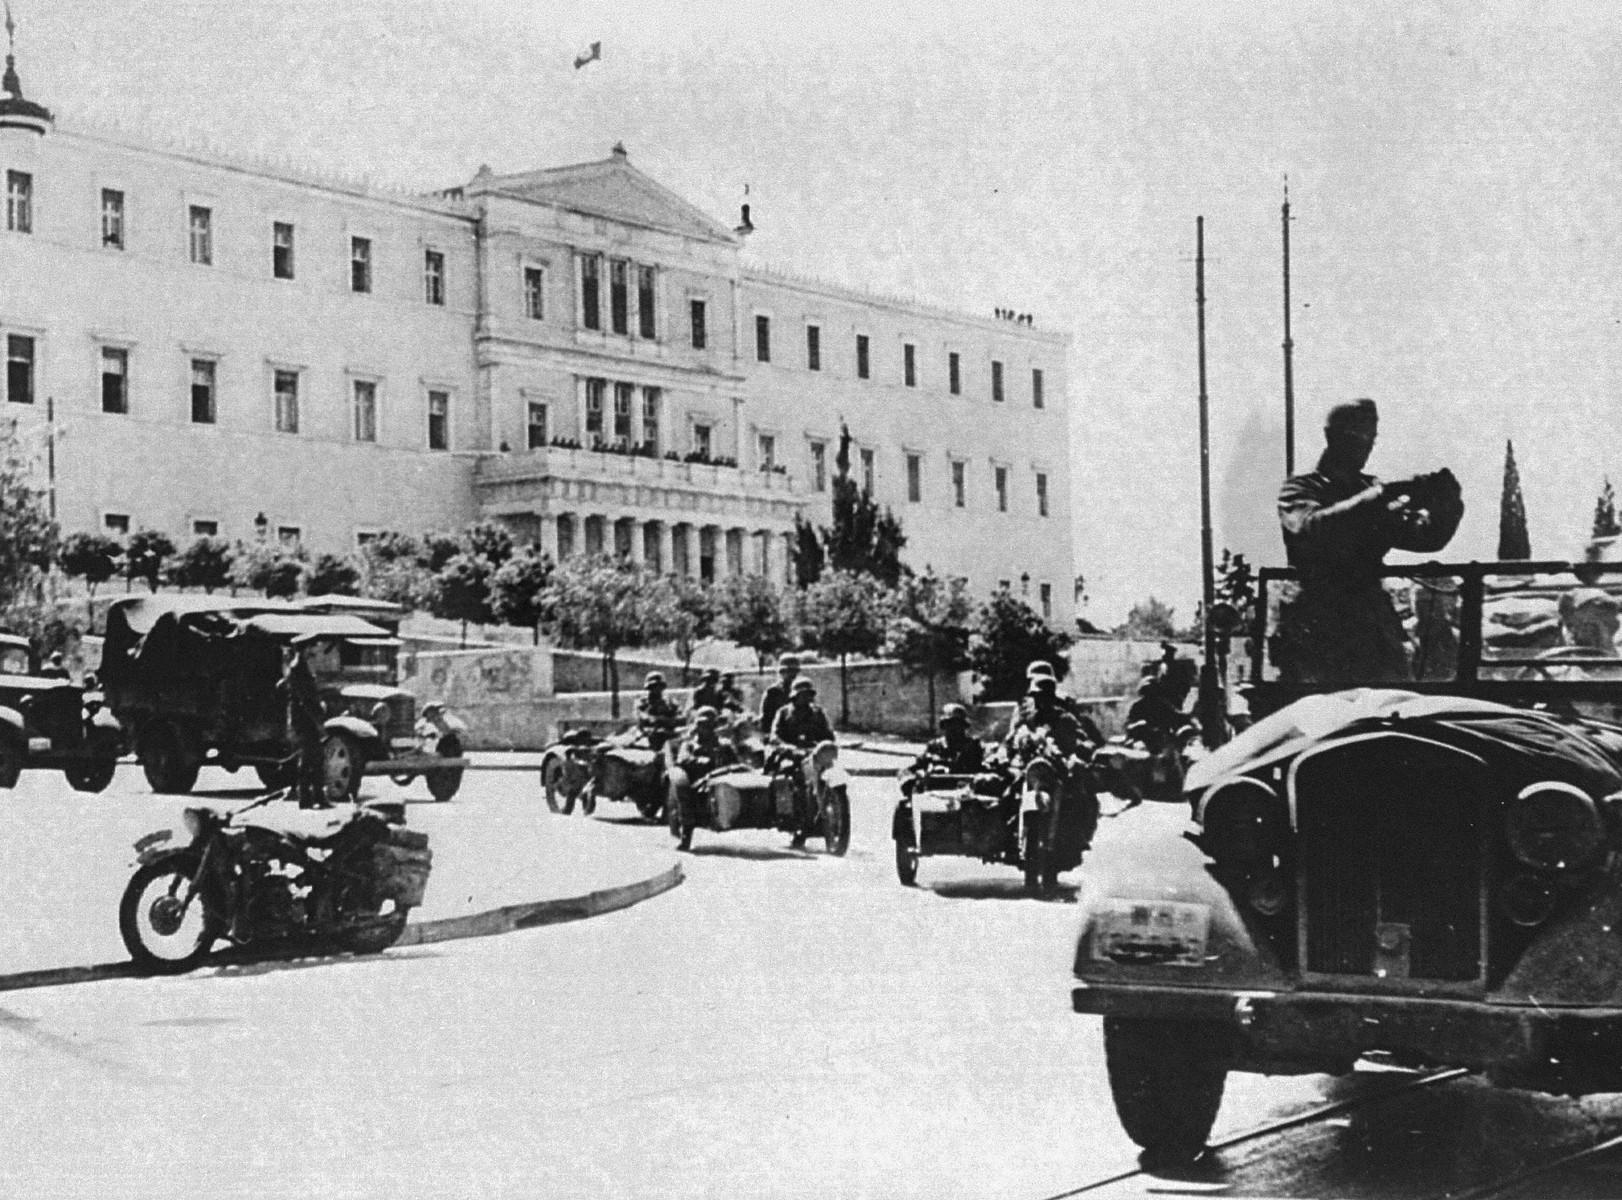 German troops drive in front of a government building in Athens during the occupation of the city.